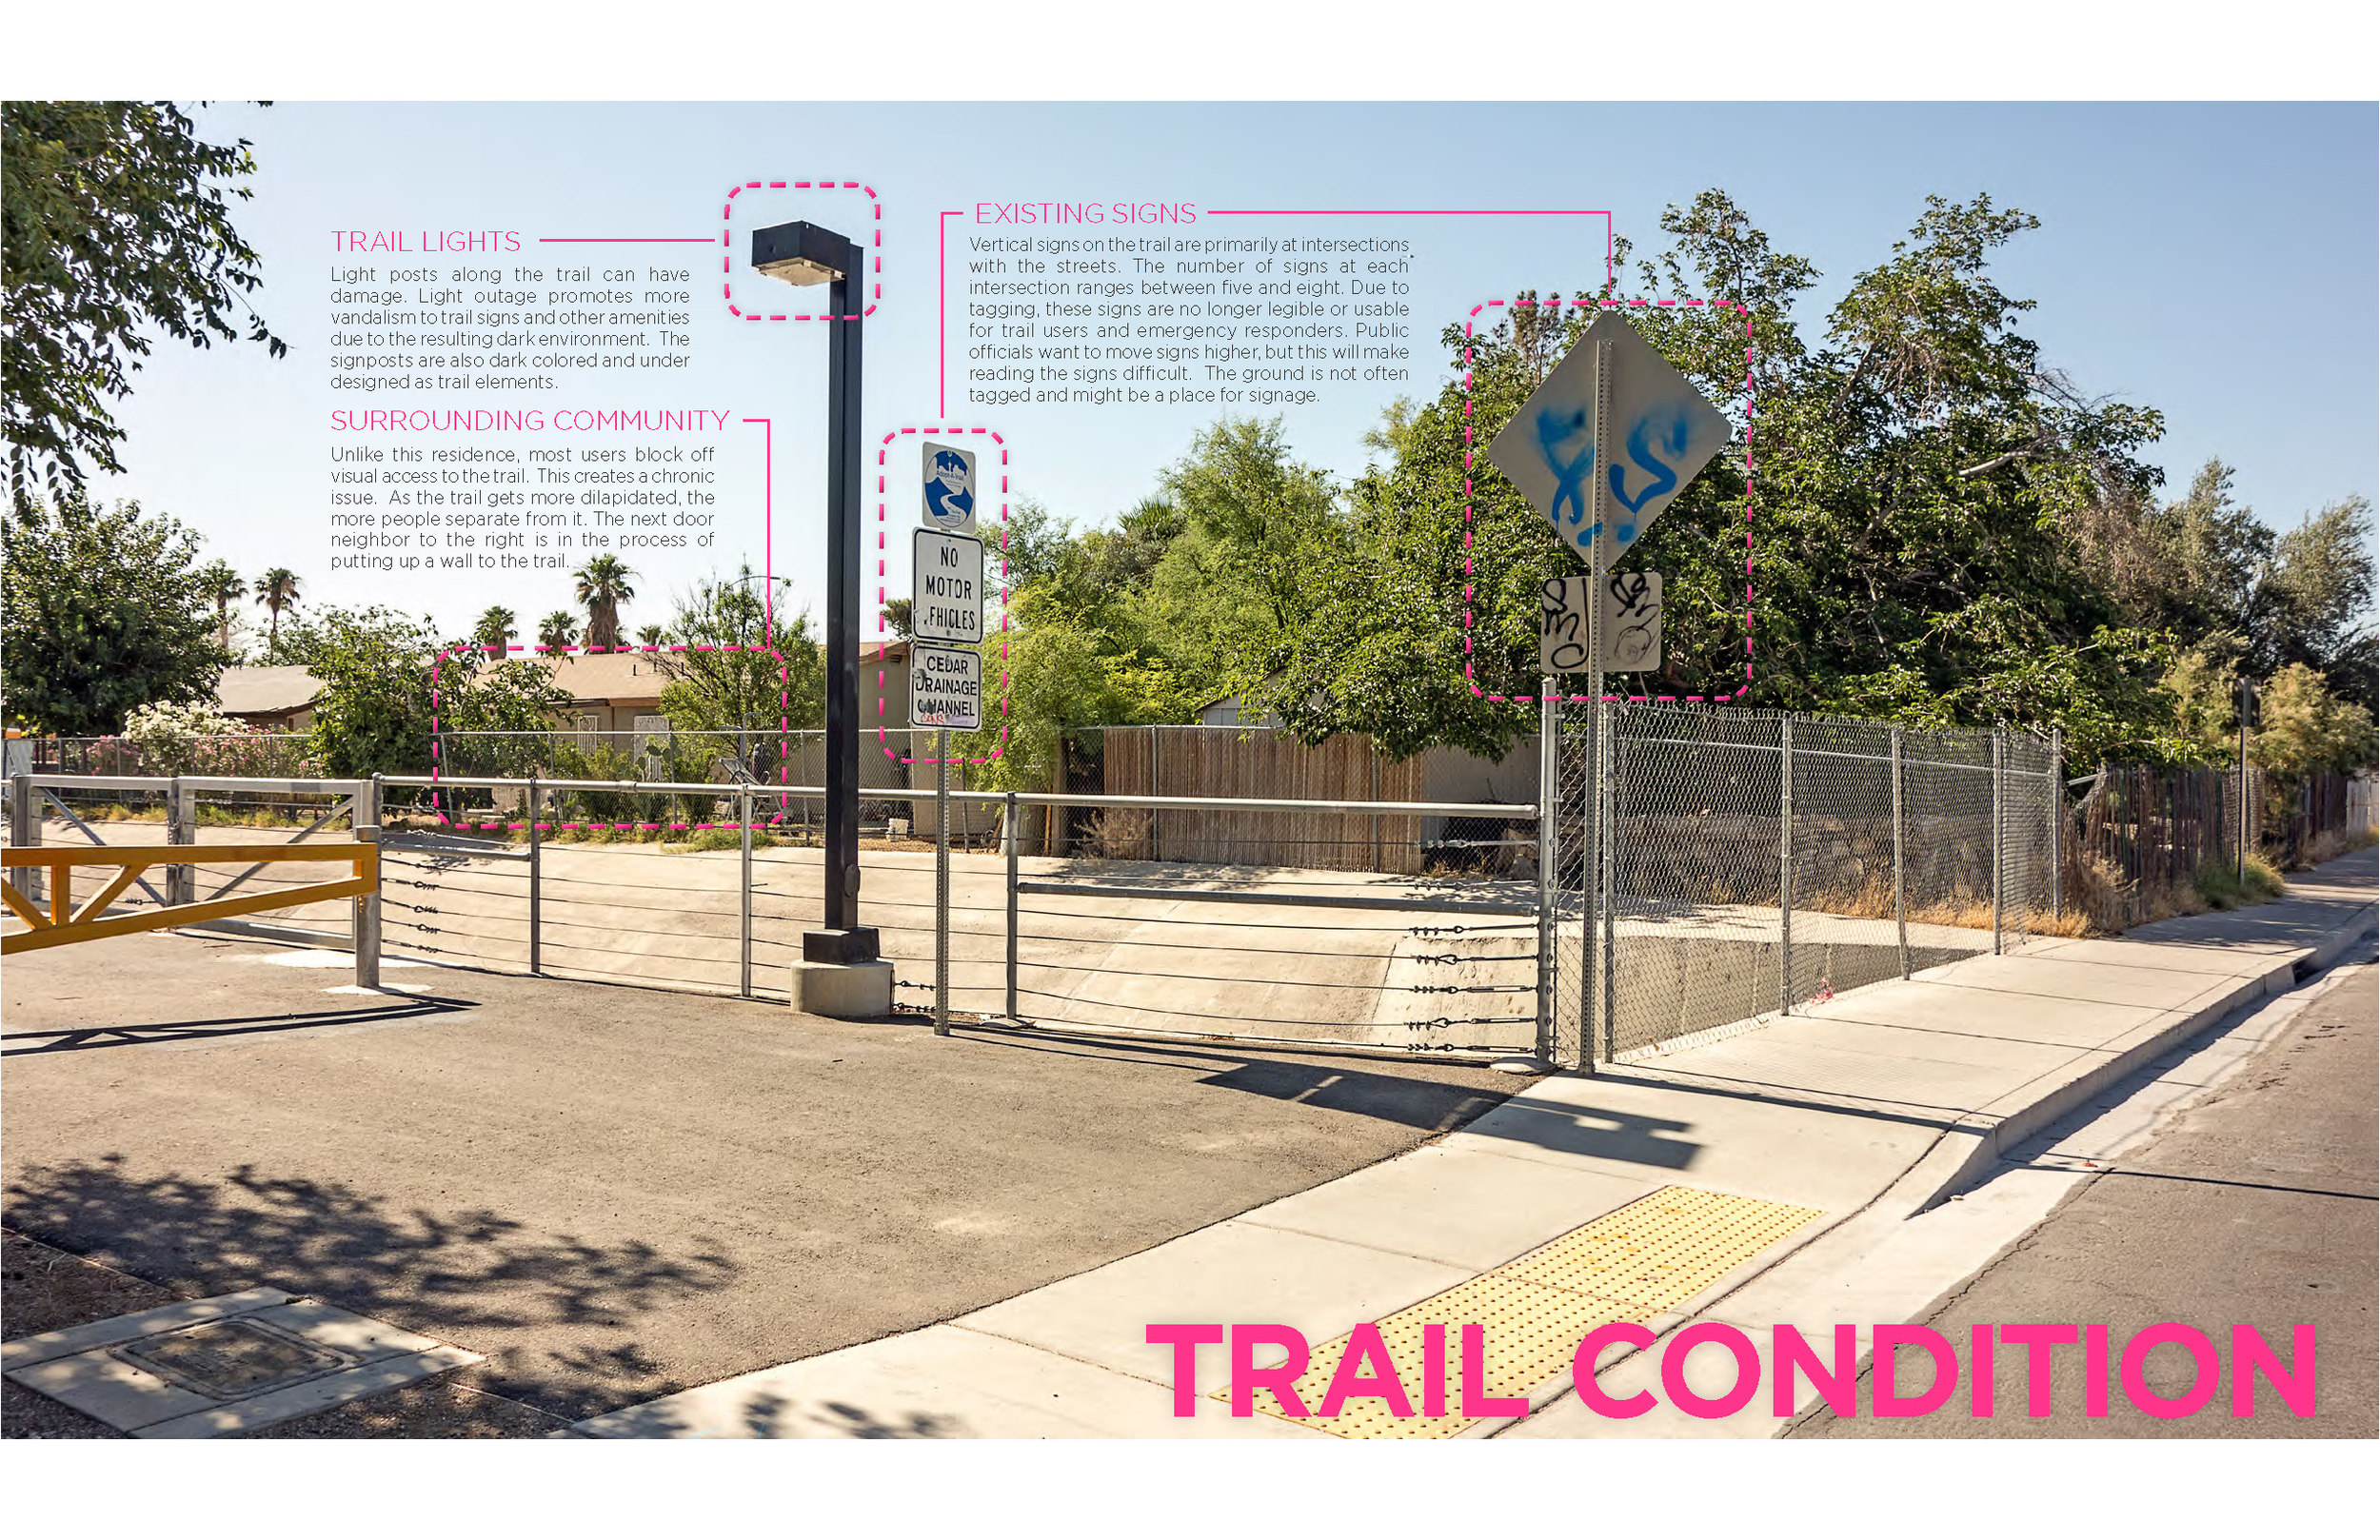 Analysis of a typical trail condition, showing the variety of signs, and tagging.